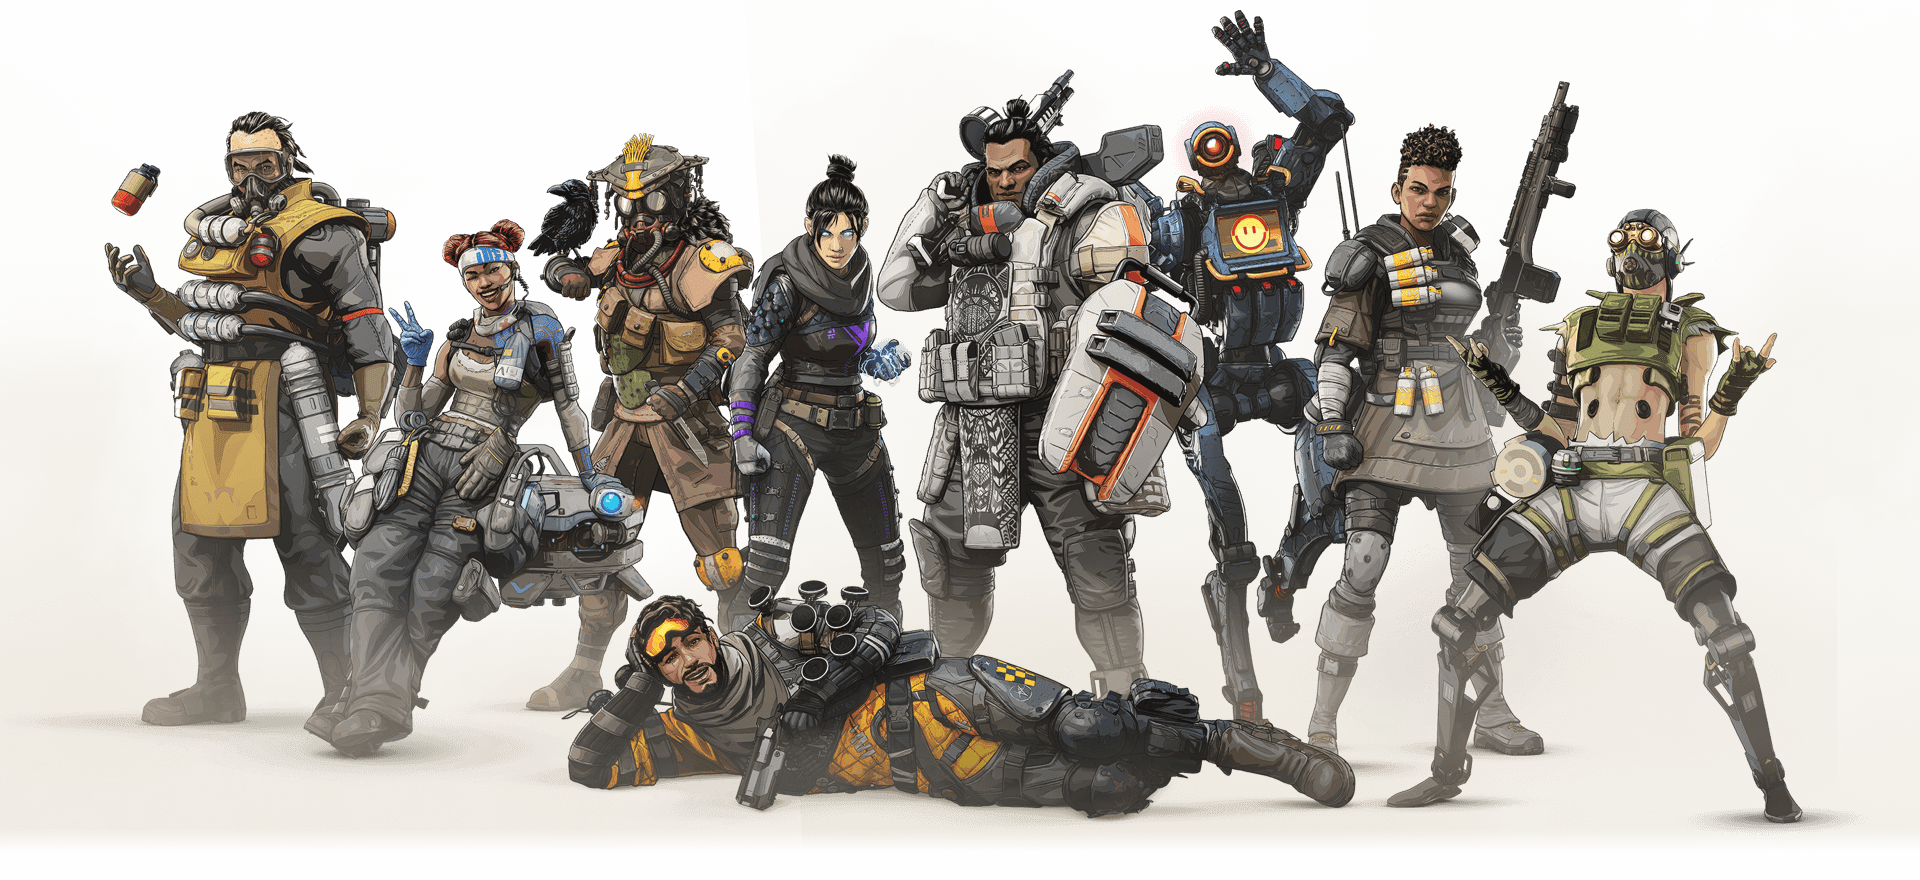 APEX LEGENDS Xbox One Version Full Game Free Download